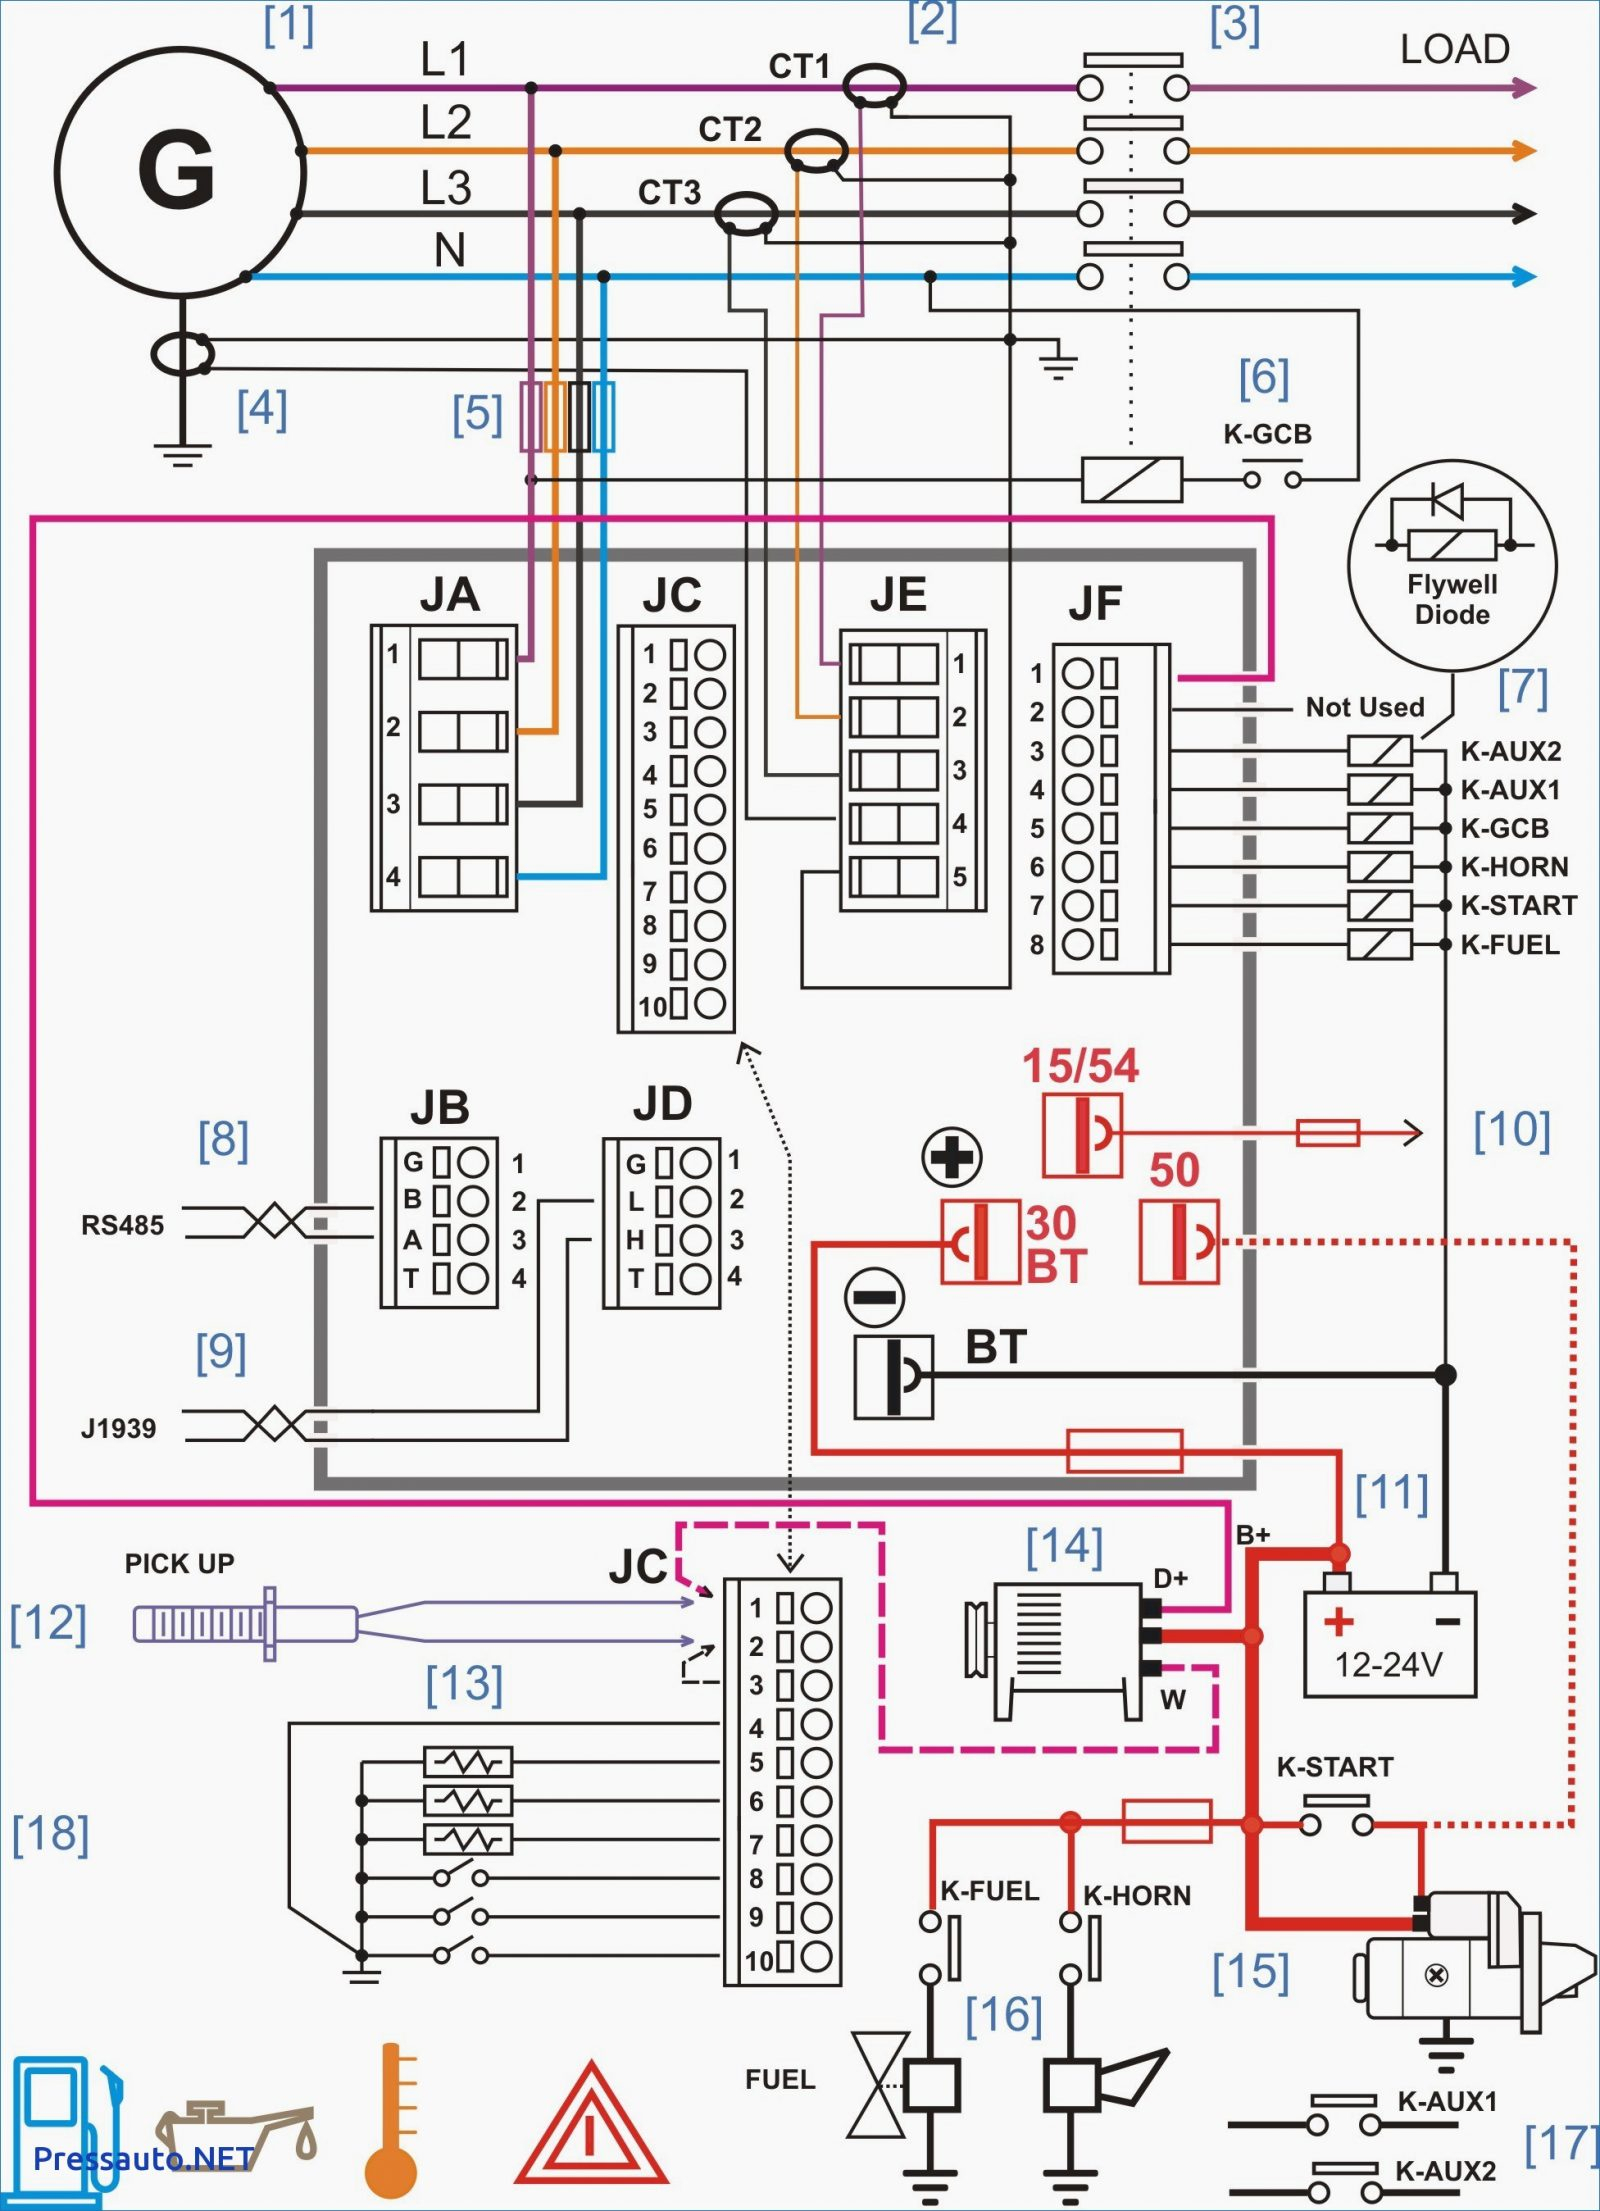 asco 300 wiring diagram Collection-Asco Automatic Transfer Switch Series 300 Wiring Diagram asco 7000 Series Automatic Transfer Switch Wiring 20-q